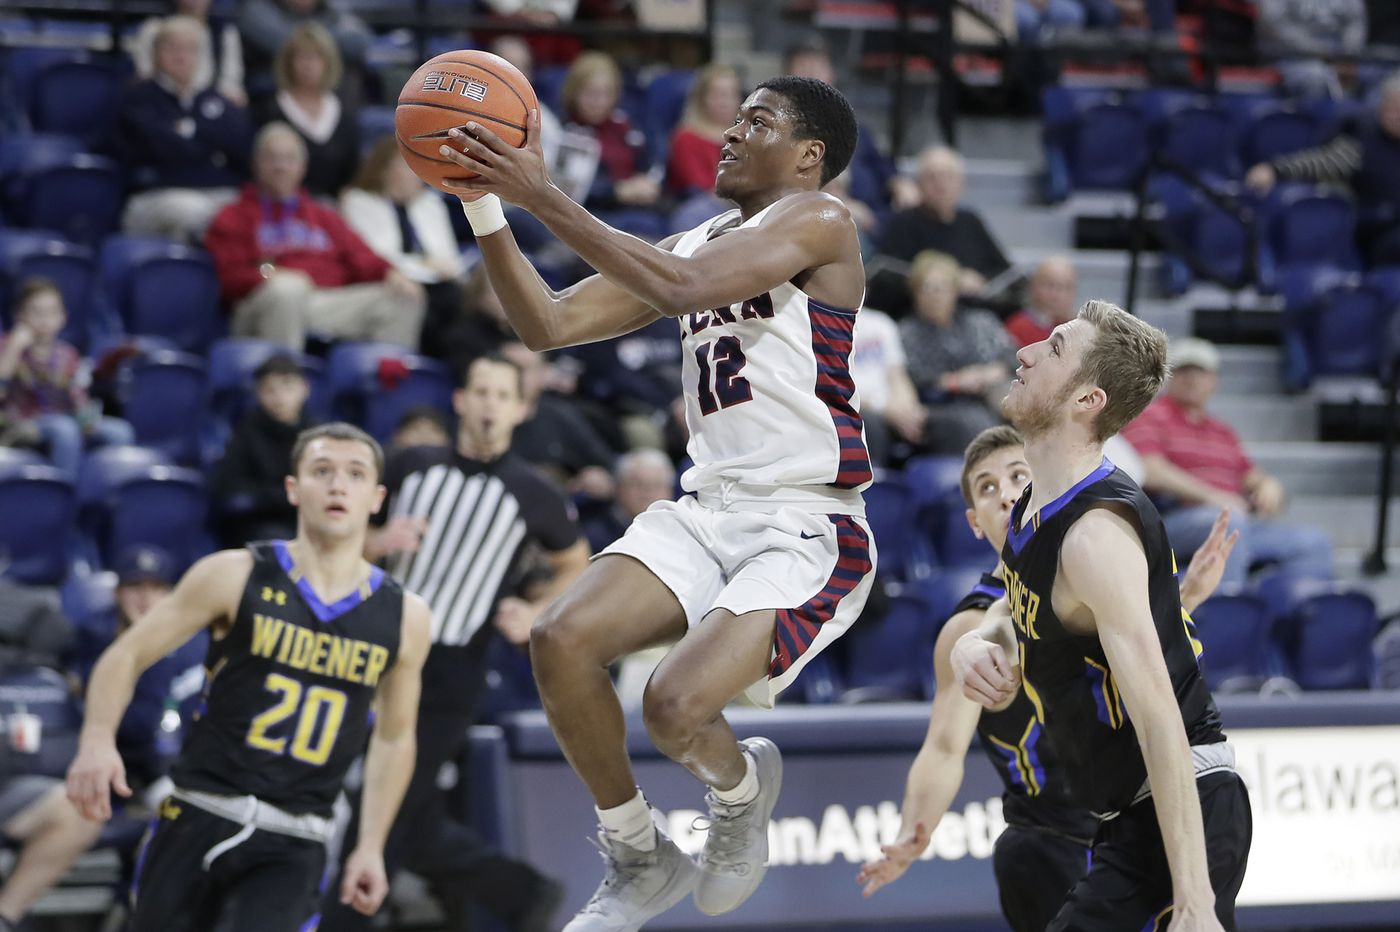 Penn coach Steve Donahue believes this season's Quakers might be his best yet